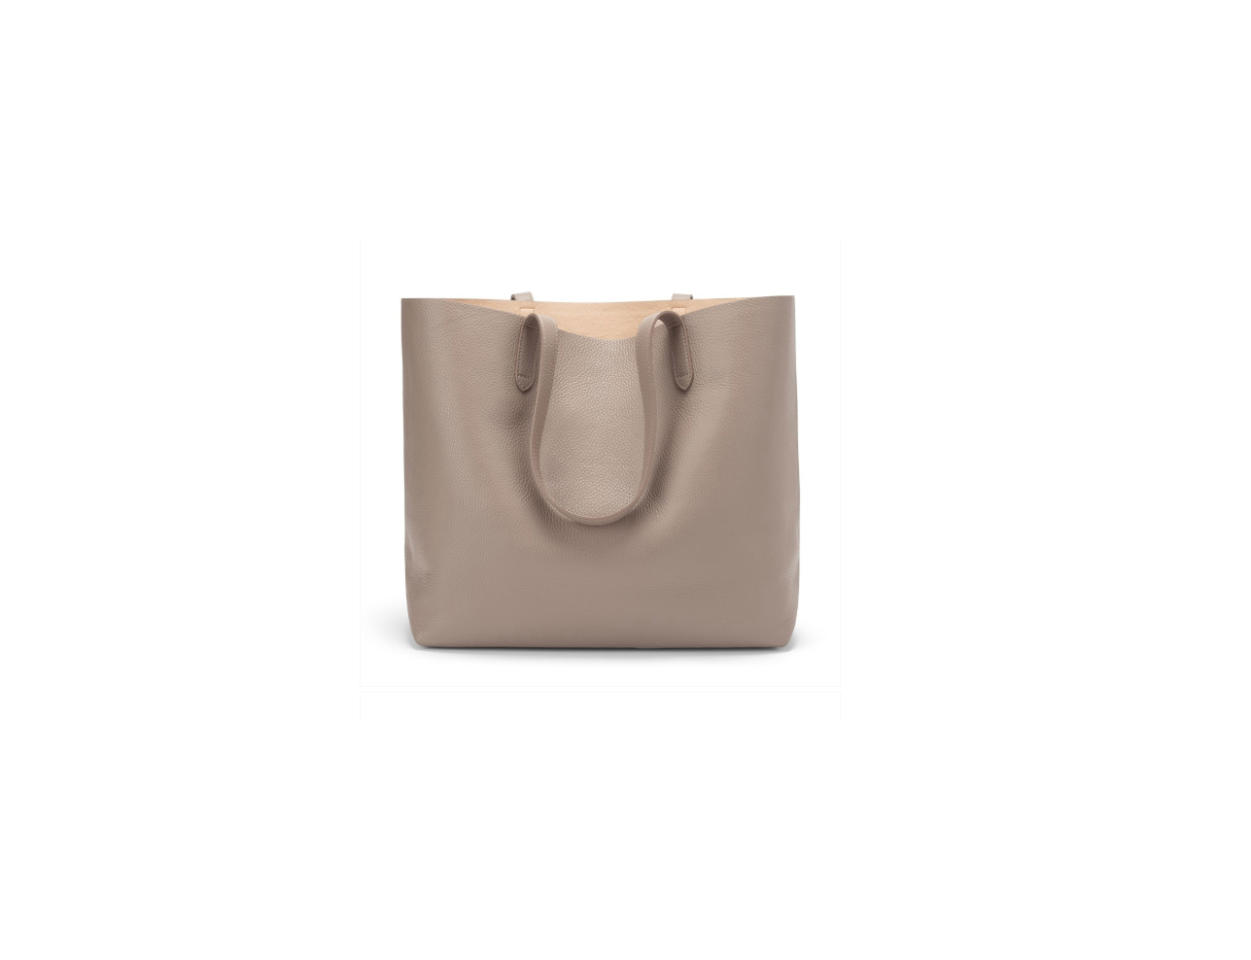 p Stash everyday essentials like a laptop or change of shoes in this  elevated 60e4517a8d2f1